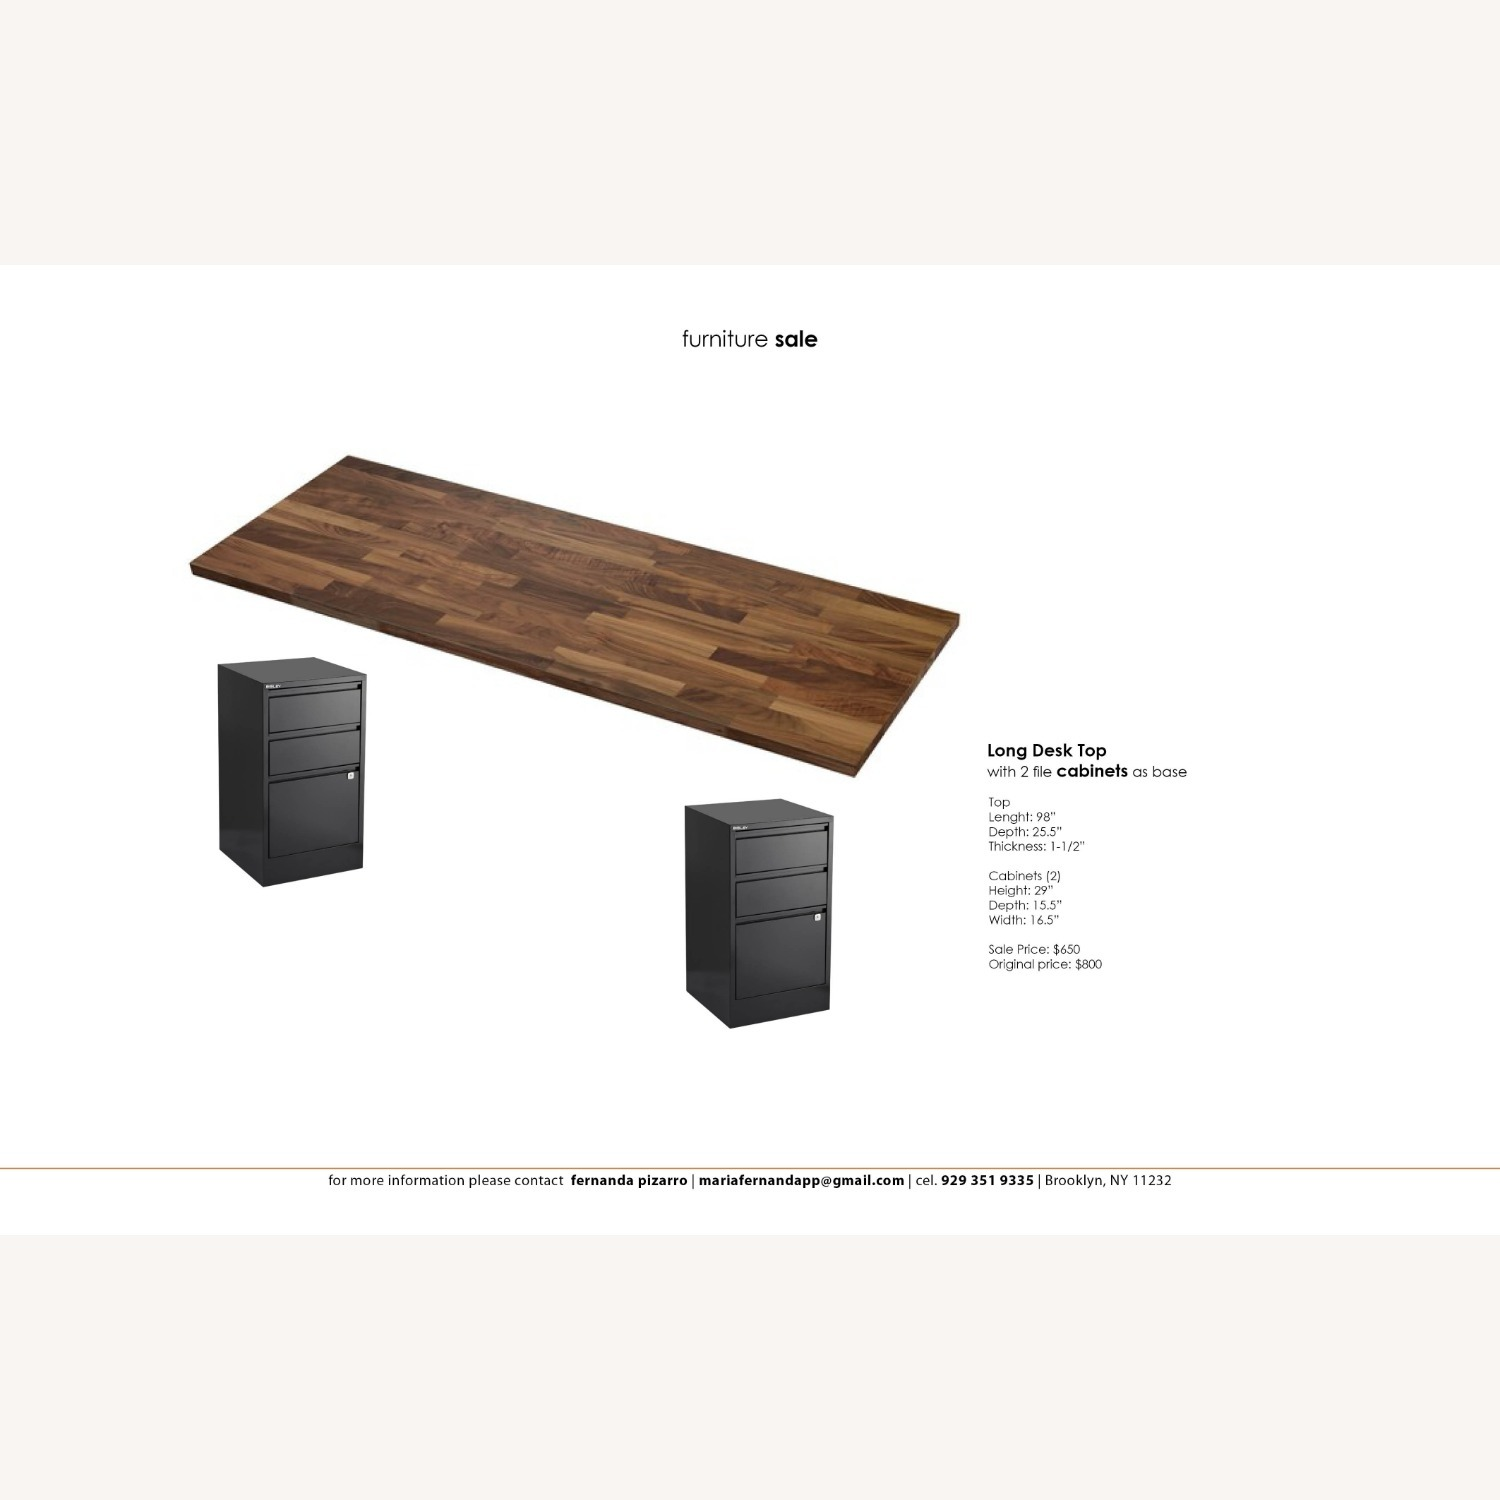 Long Wood Desk Top with 2 Filing Cabinets - image-1